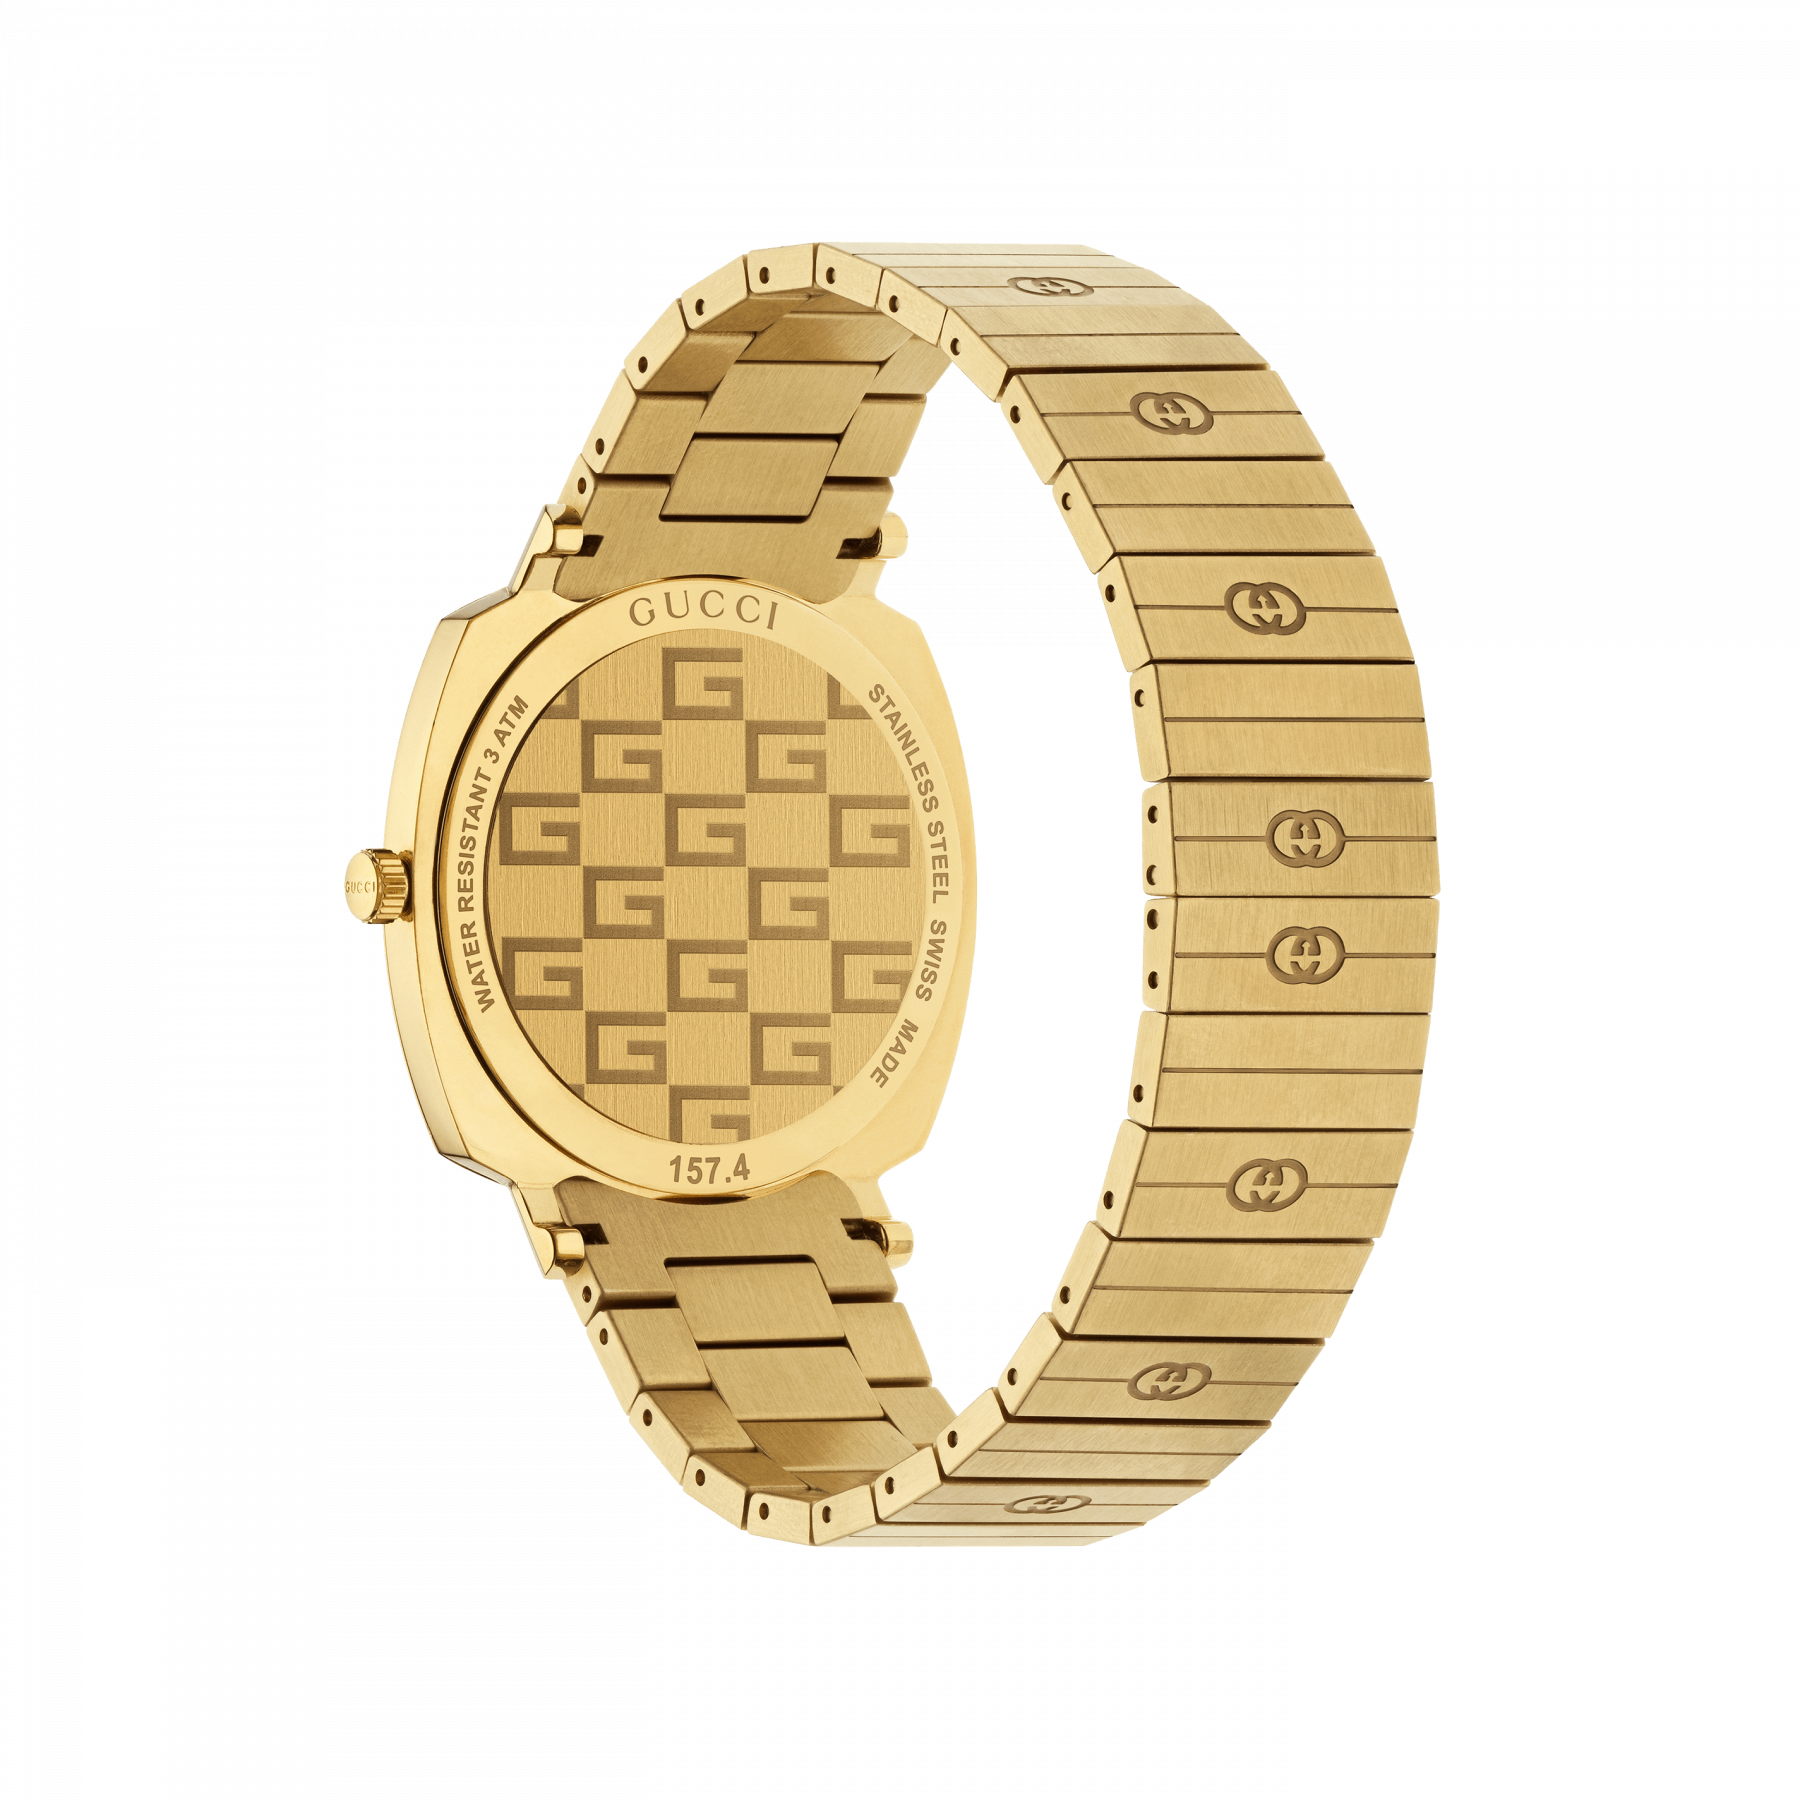 Gucci Grip 38mm Yellow Gold Watch back view